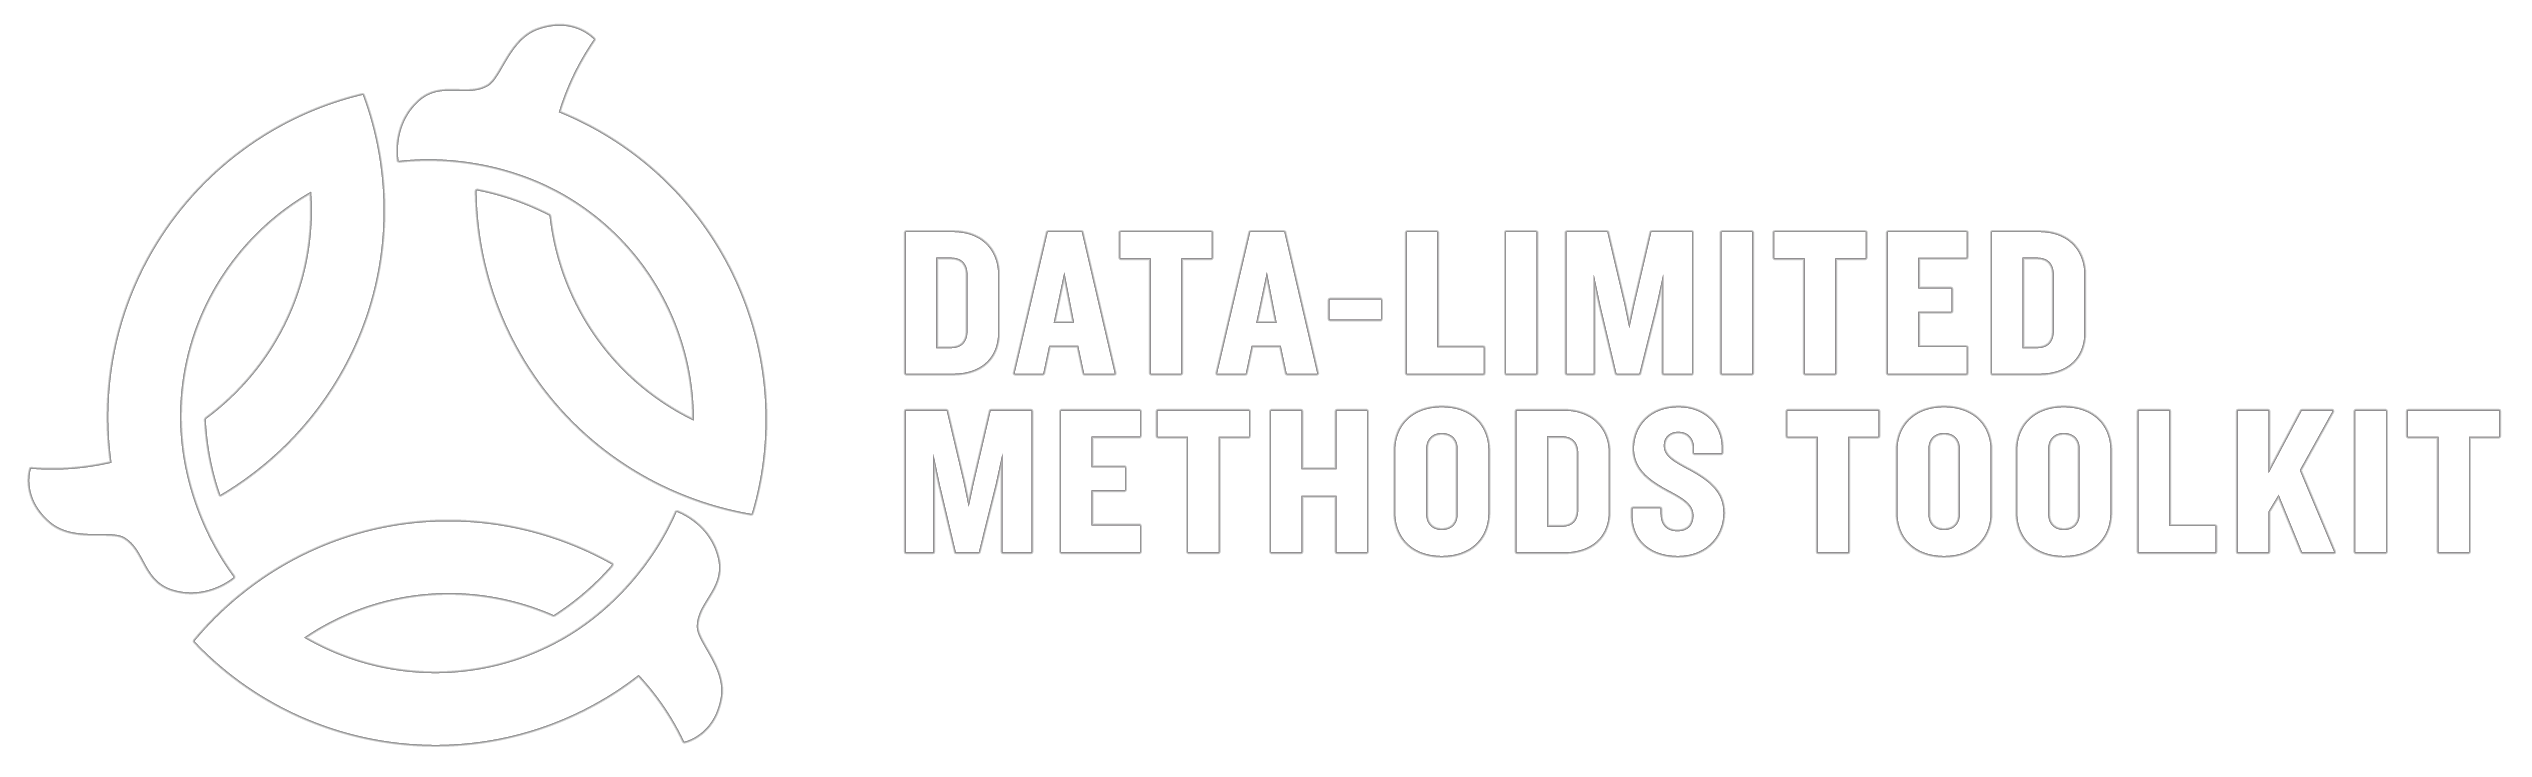 Data-Limited Methods Toolkit (DLMtool) - Management Strategy Evaluation for Data-Limited Fisheries